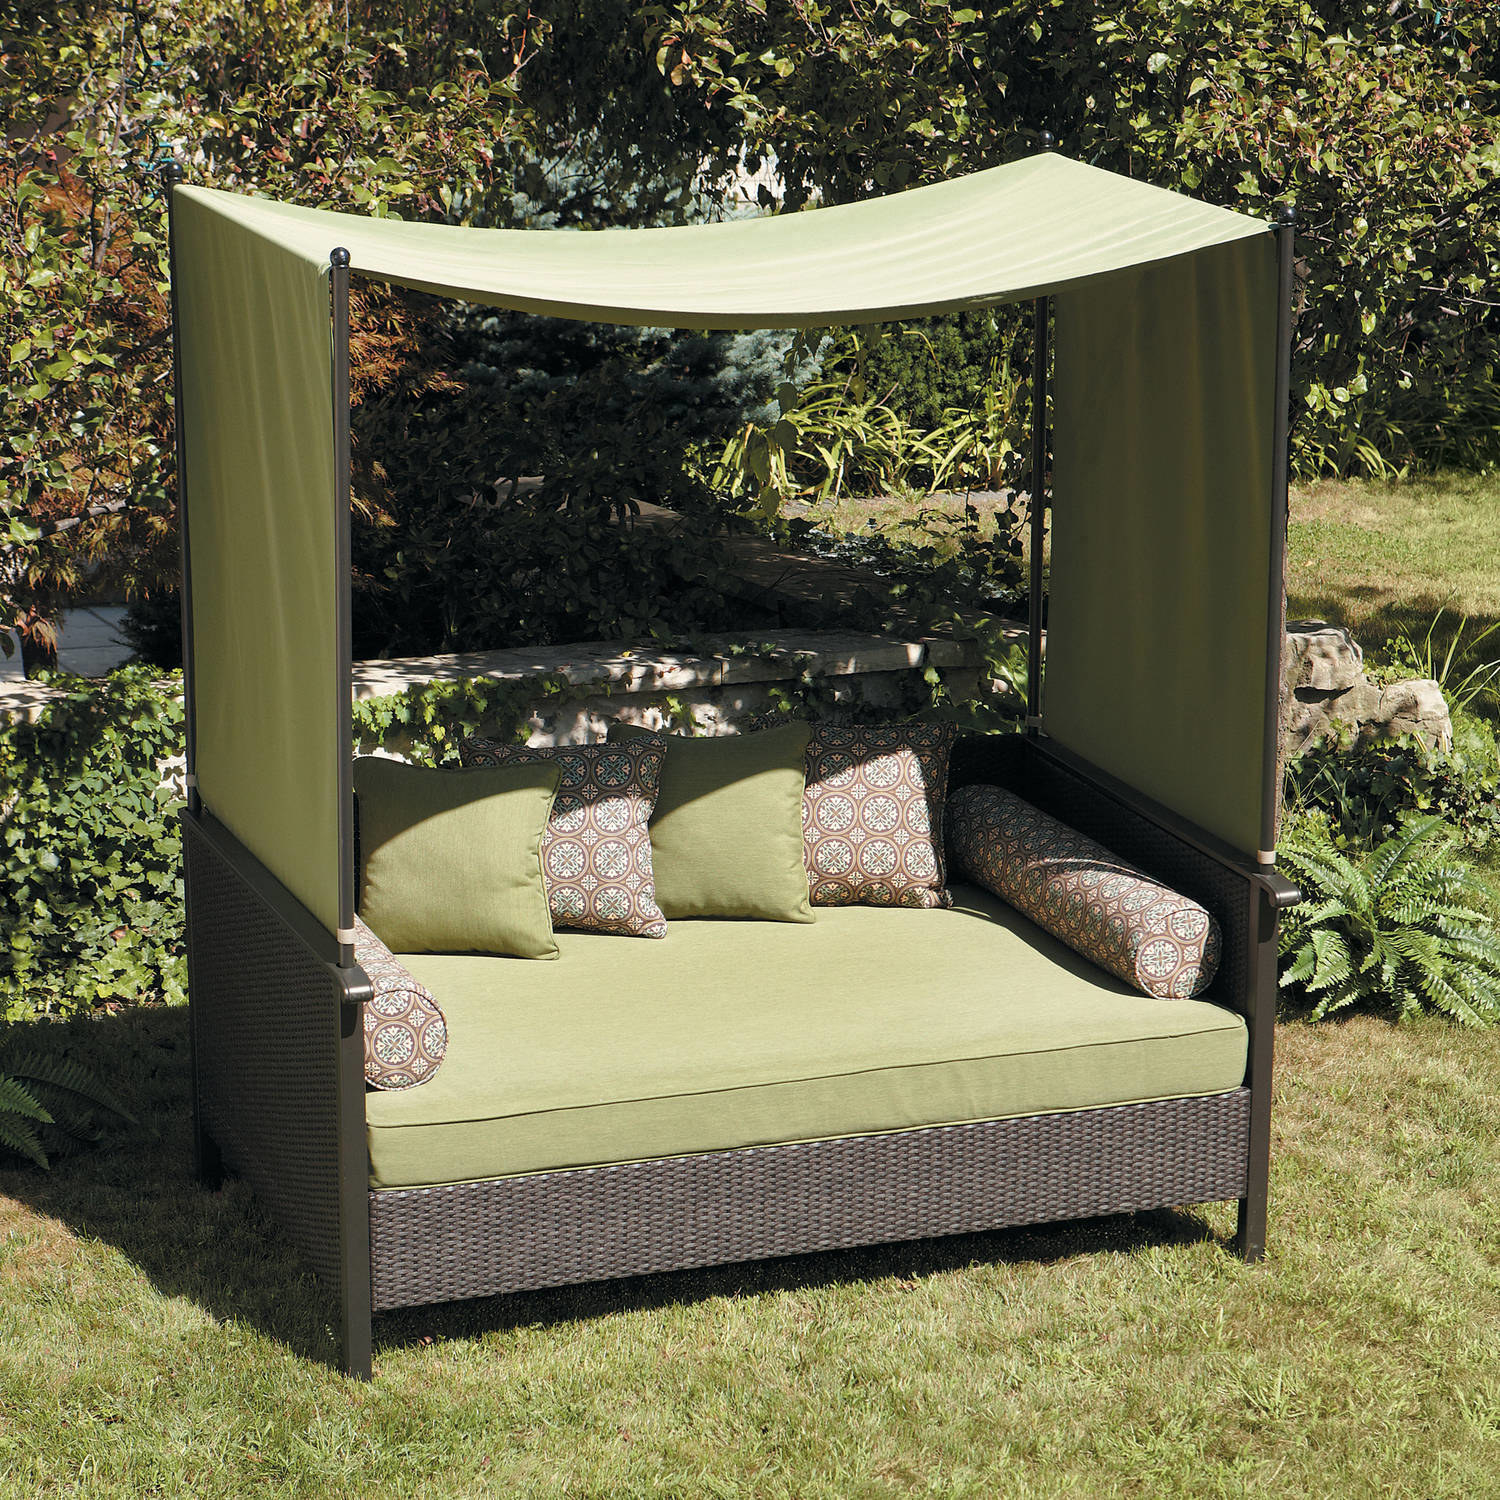 outdoor furniture from walmart that